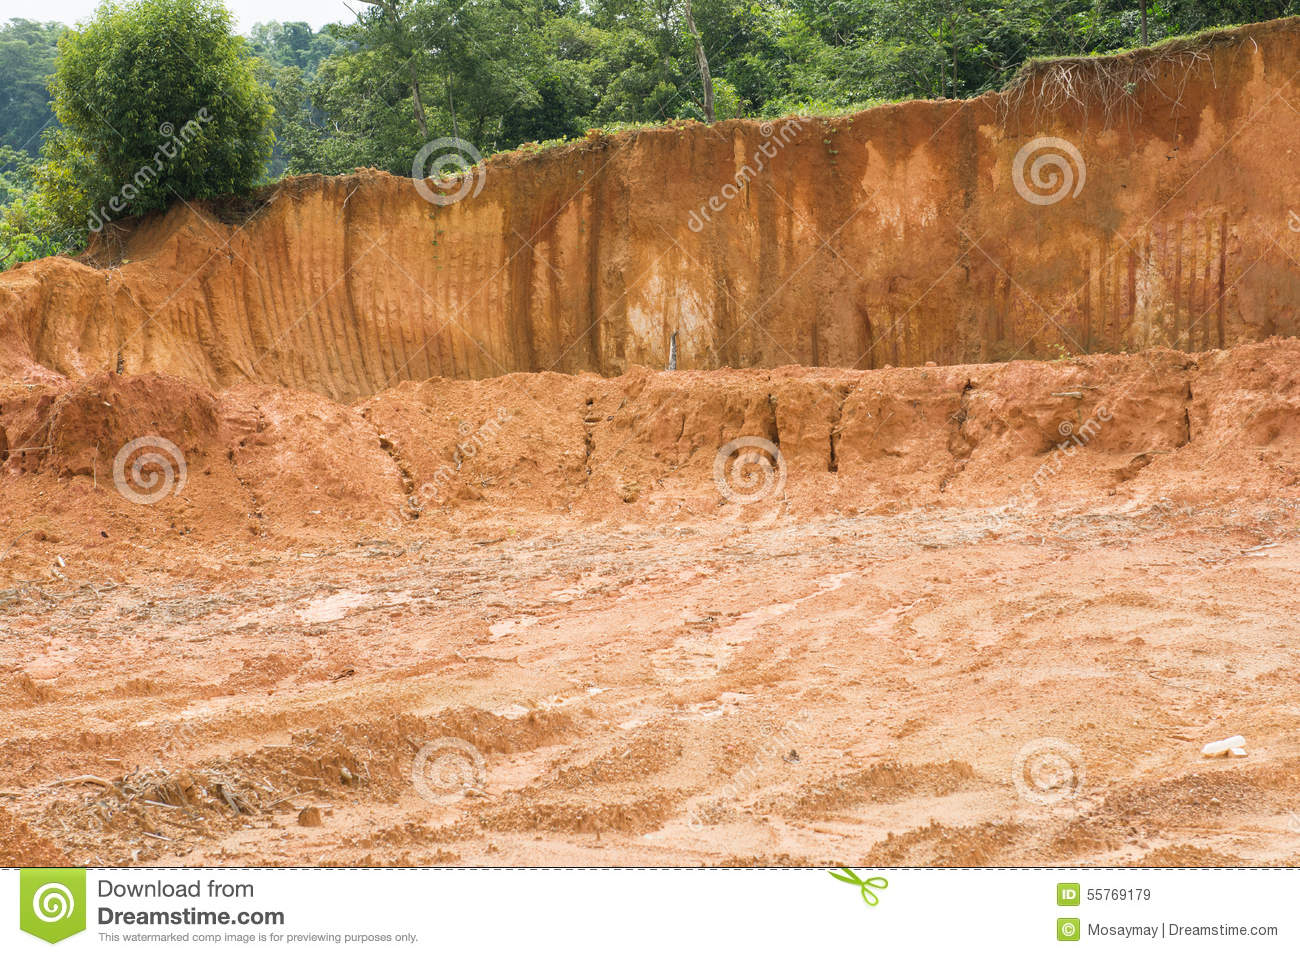 Laterite soil excavation site for sale stock image image for Soil for sale